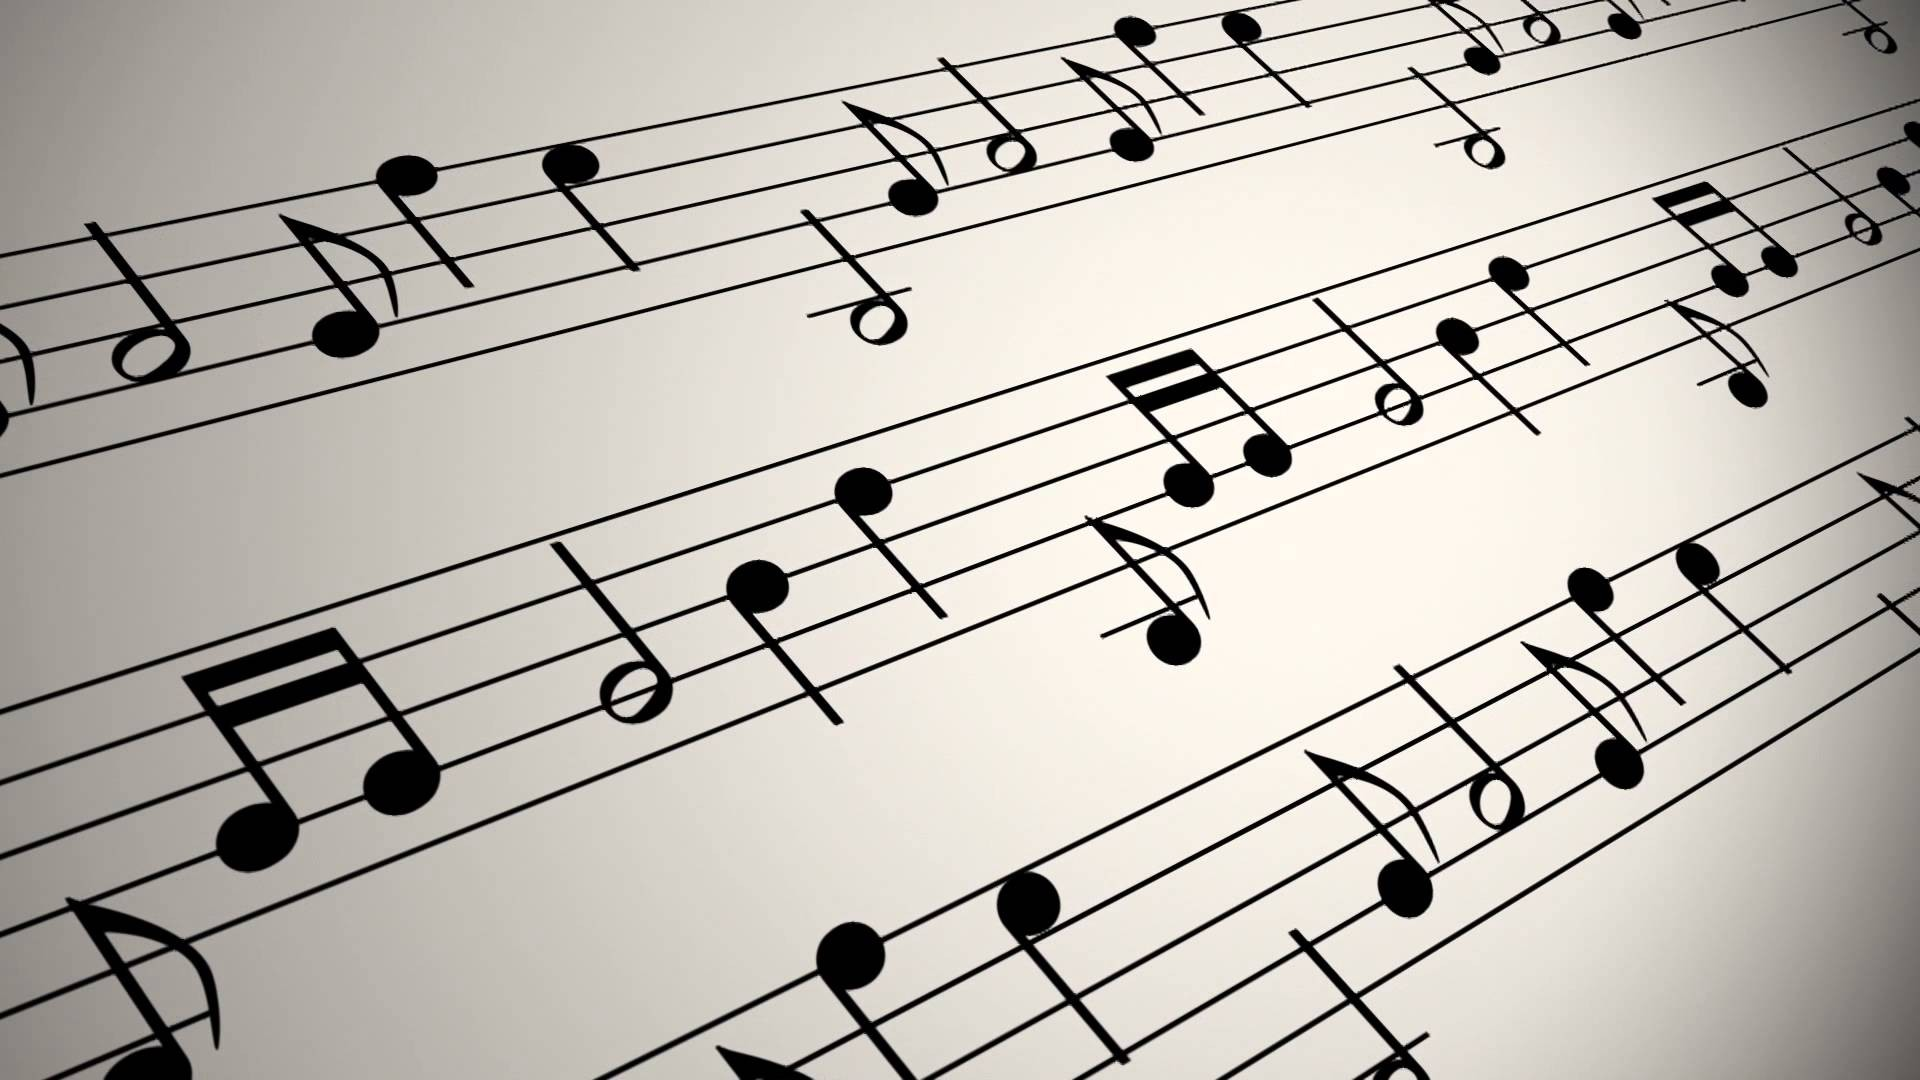 Music notes wallpaper download free high resolution - Wallpaper 1920x1080 music ...